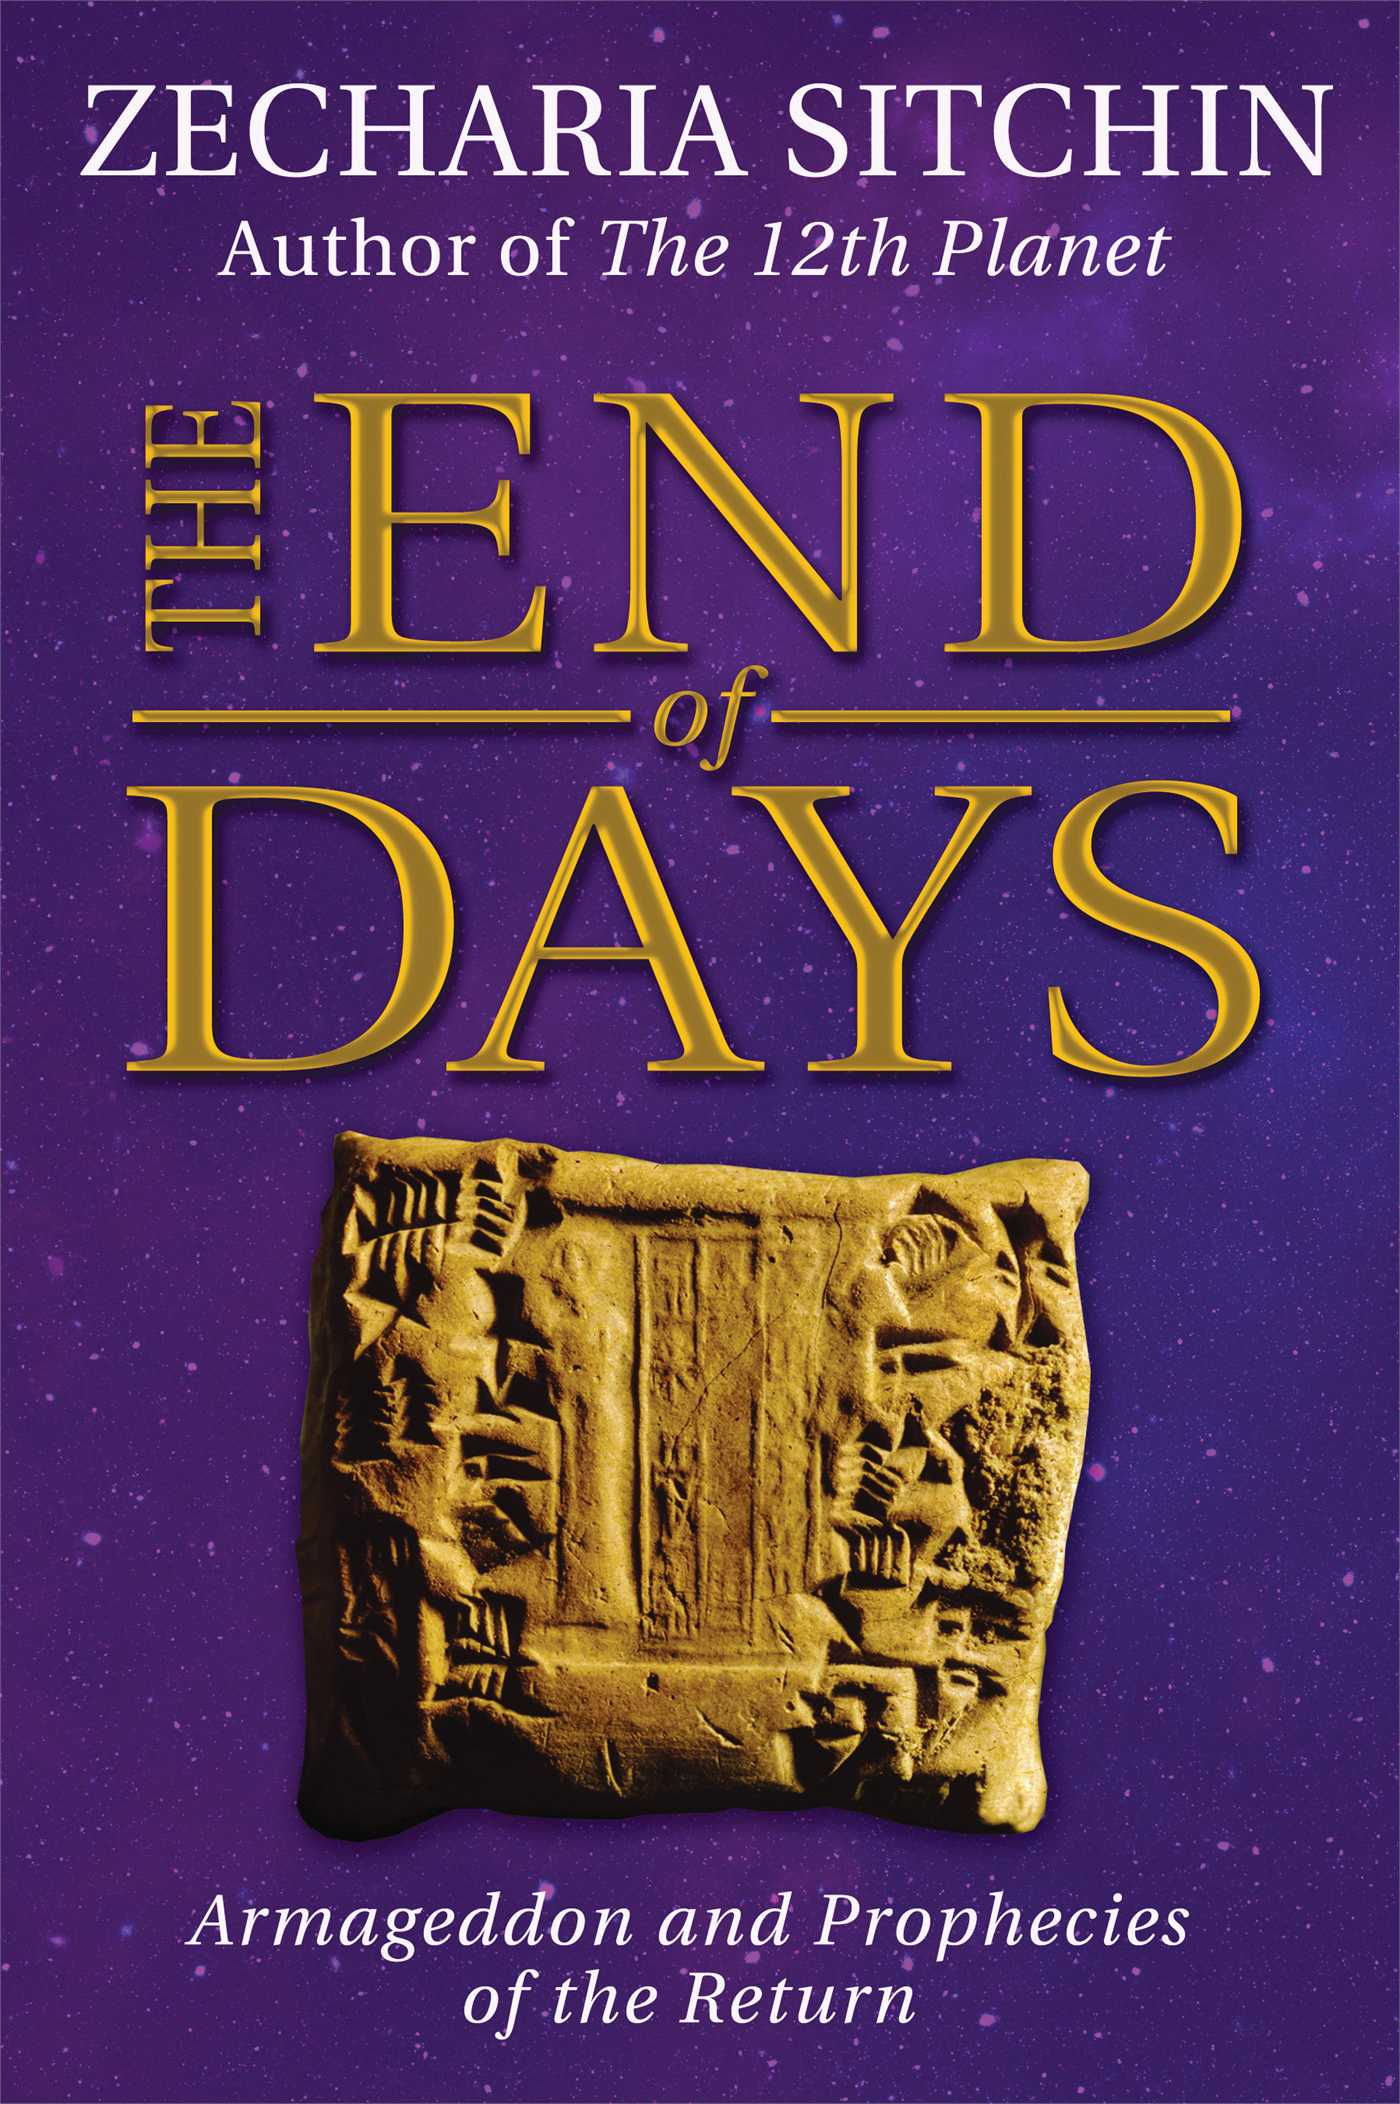 The-end-of-days-book-vii-9781591432005_hr